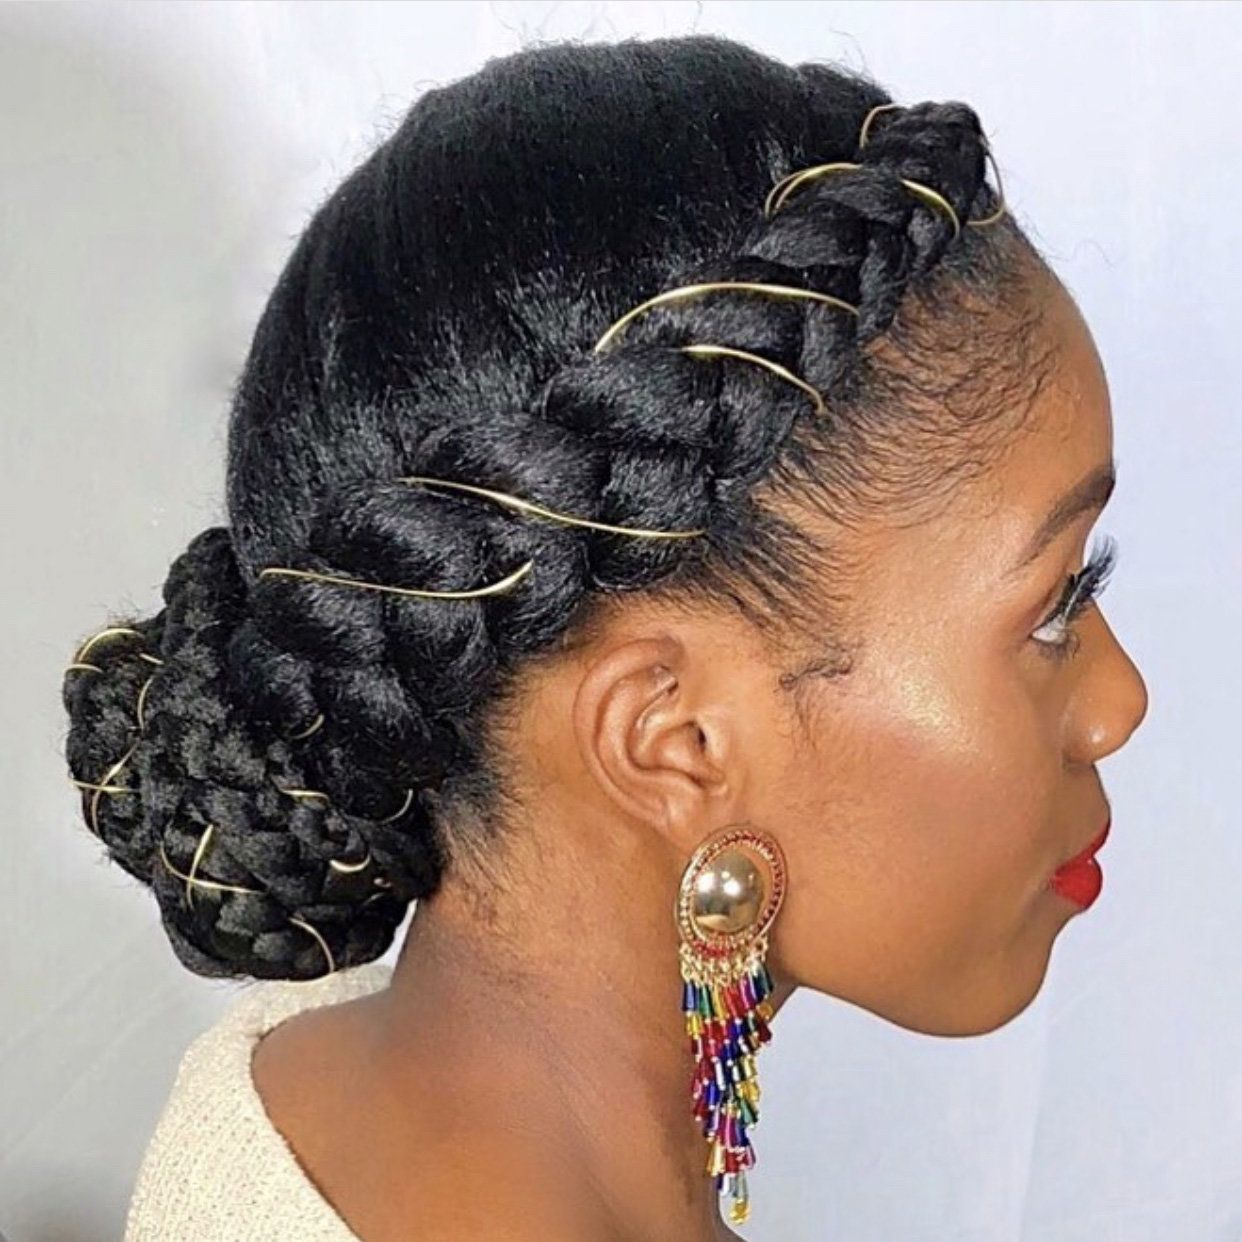 This Style Really Compliments Her Very Well Love It Hair Styles African Braids Hairstyles Cornrow Hairstyles